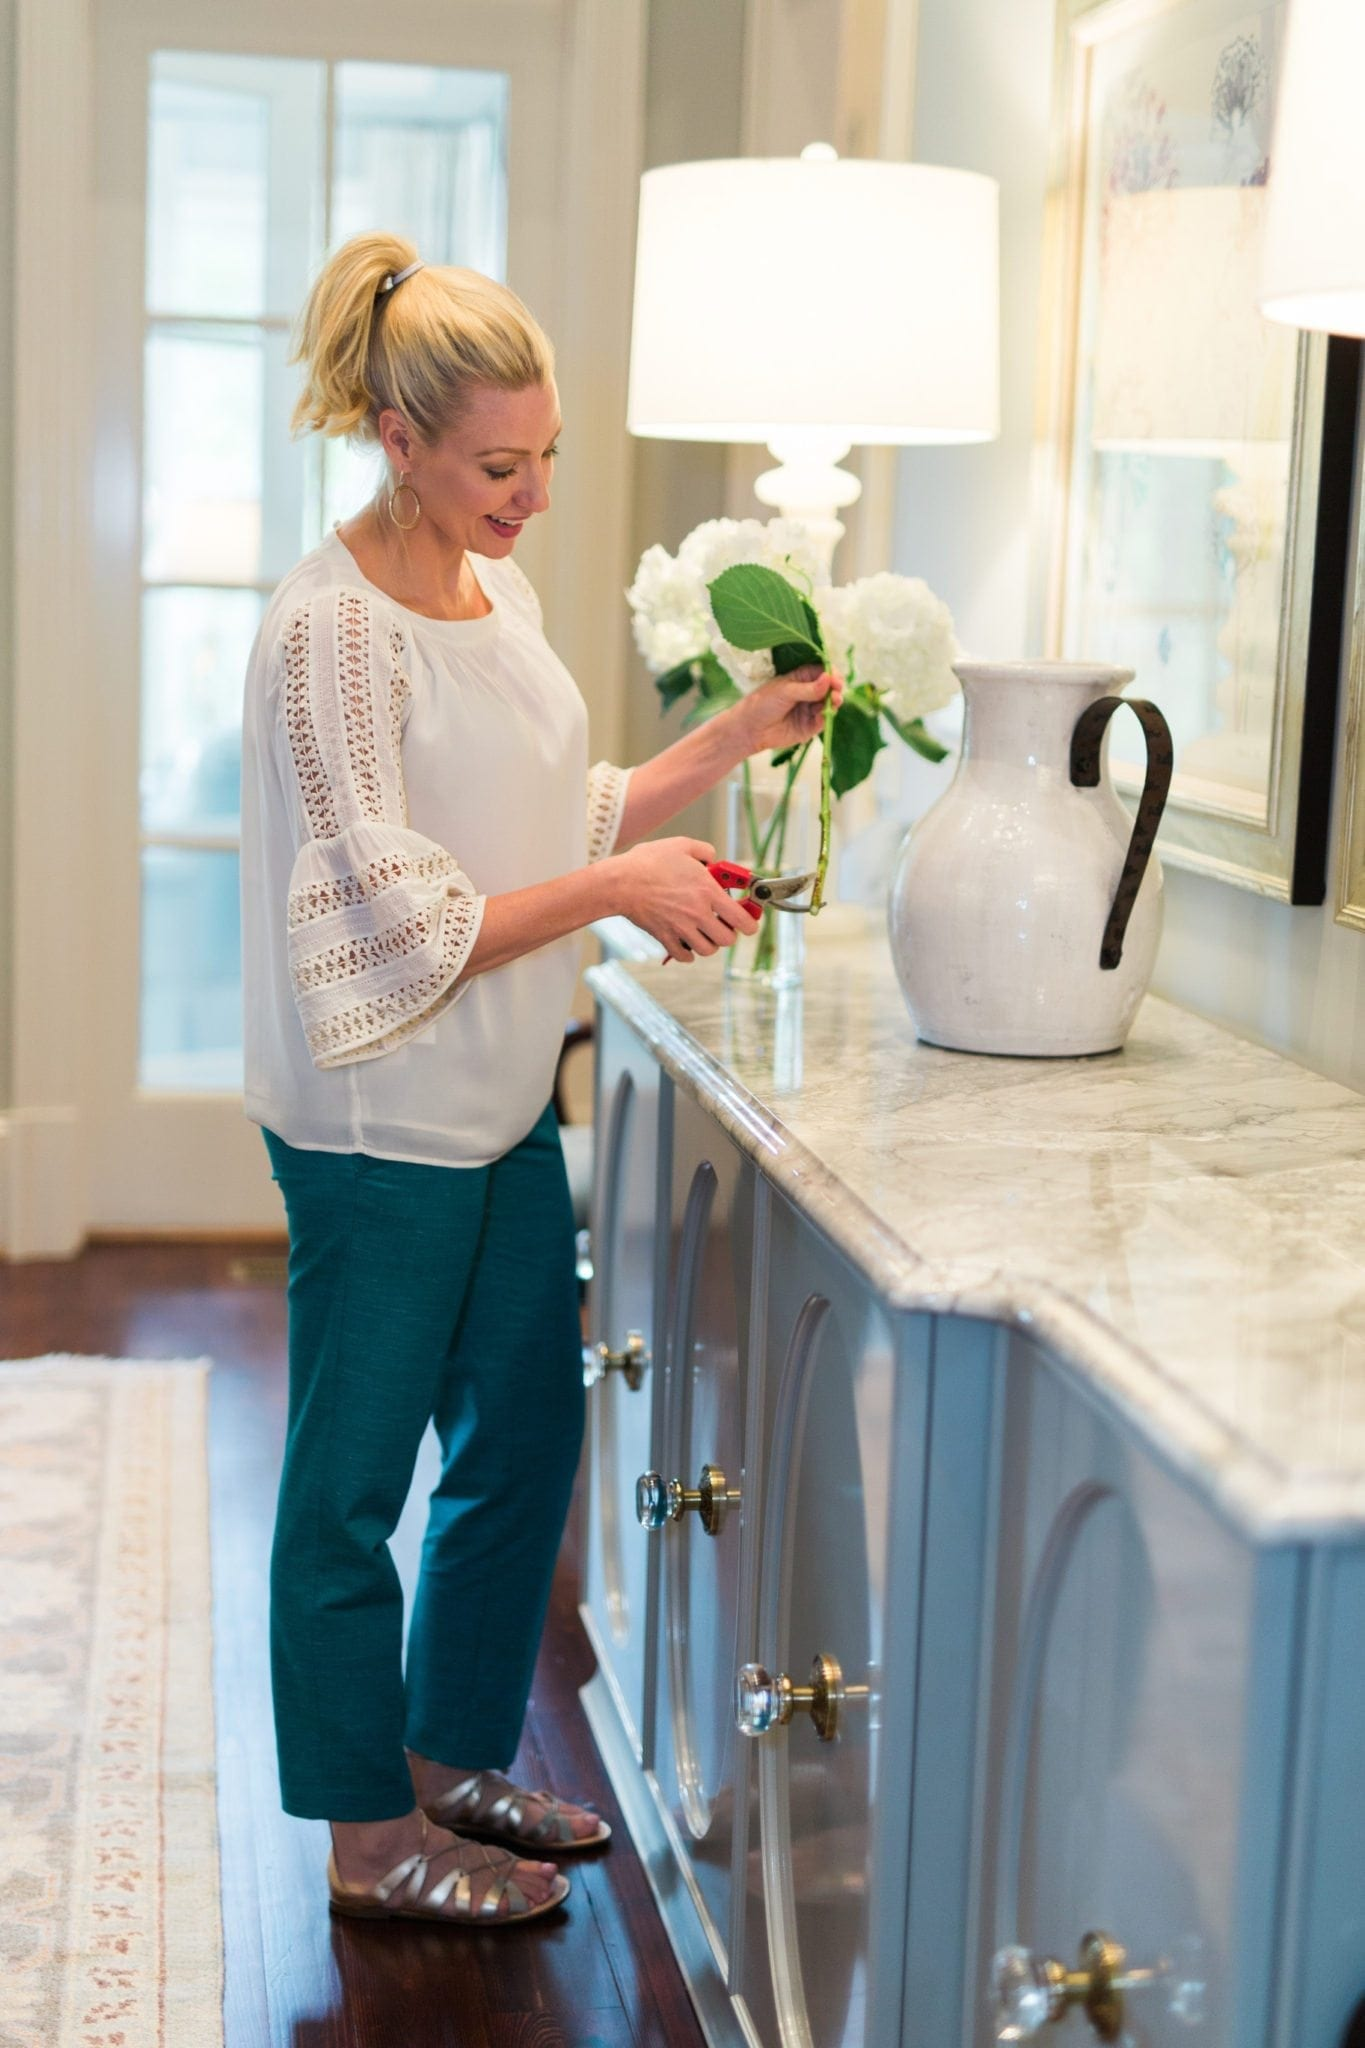 Spring outfit for women with teal pants and white lace top. Learn how to care for flower arrangements to keep them alive longer. White hydrangea and white tuscan urn on marble custom dining room table buffet.